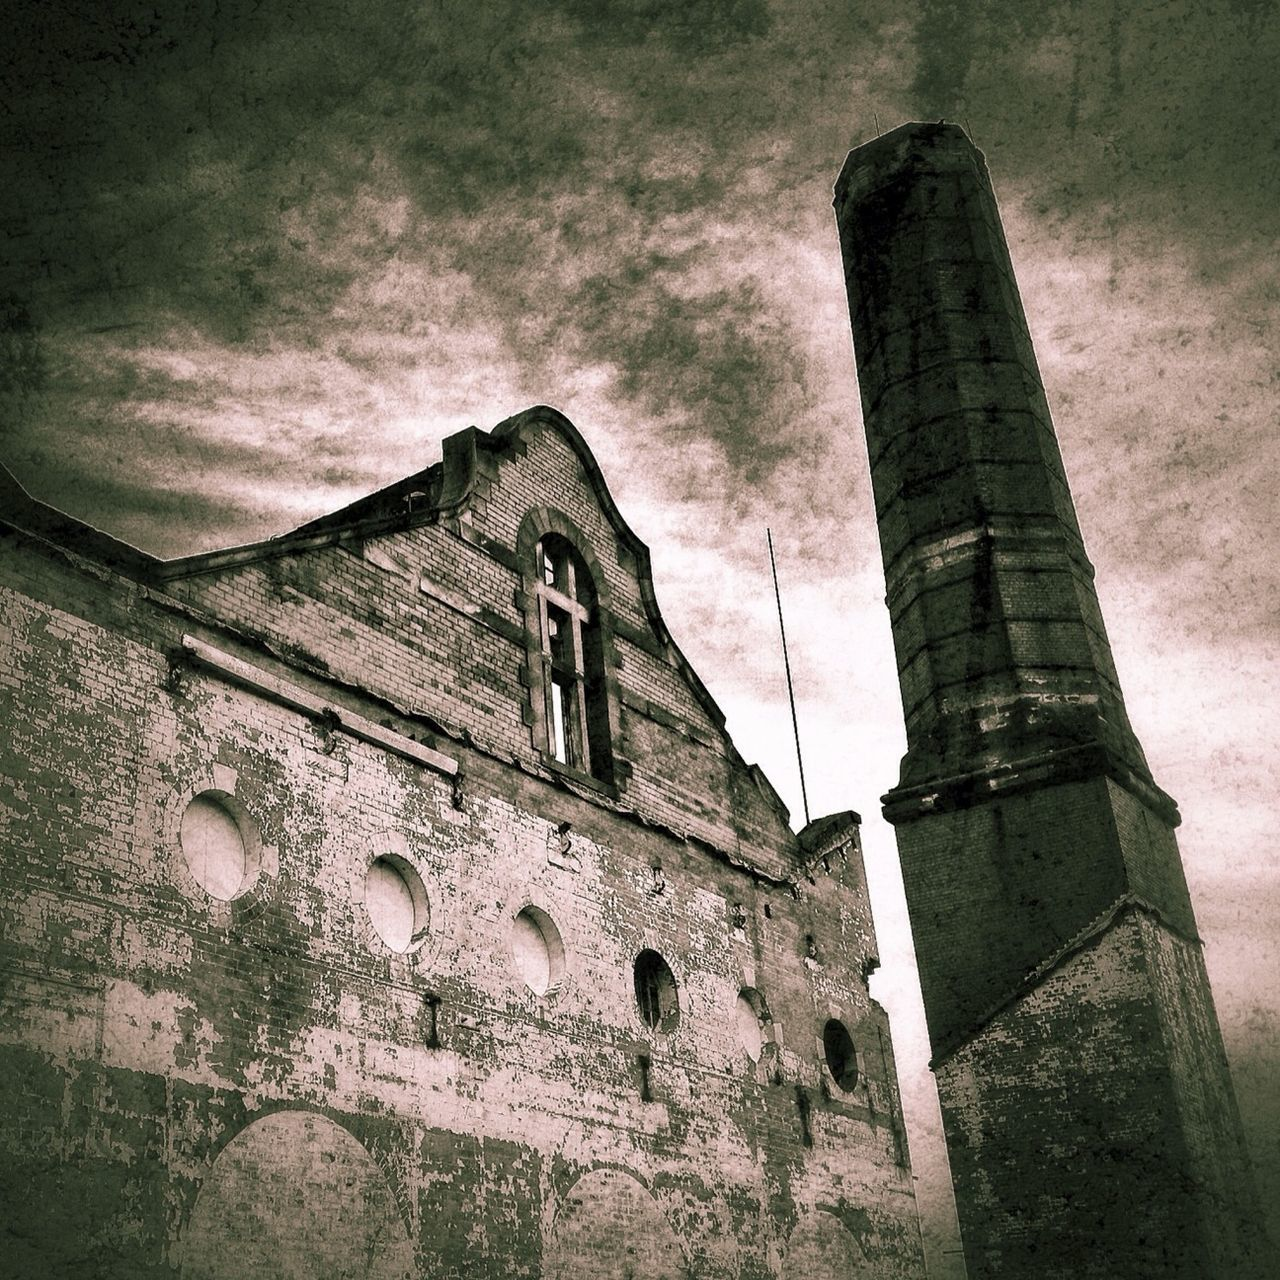 architecture, built structure, low angle view, building exterior, history, no people, outdoors, castle, ancient, old ruin, sky, day, gargoyle, ancient civilization